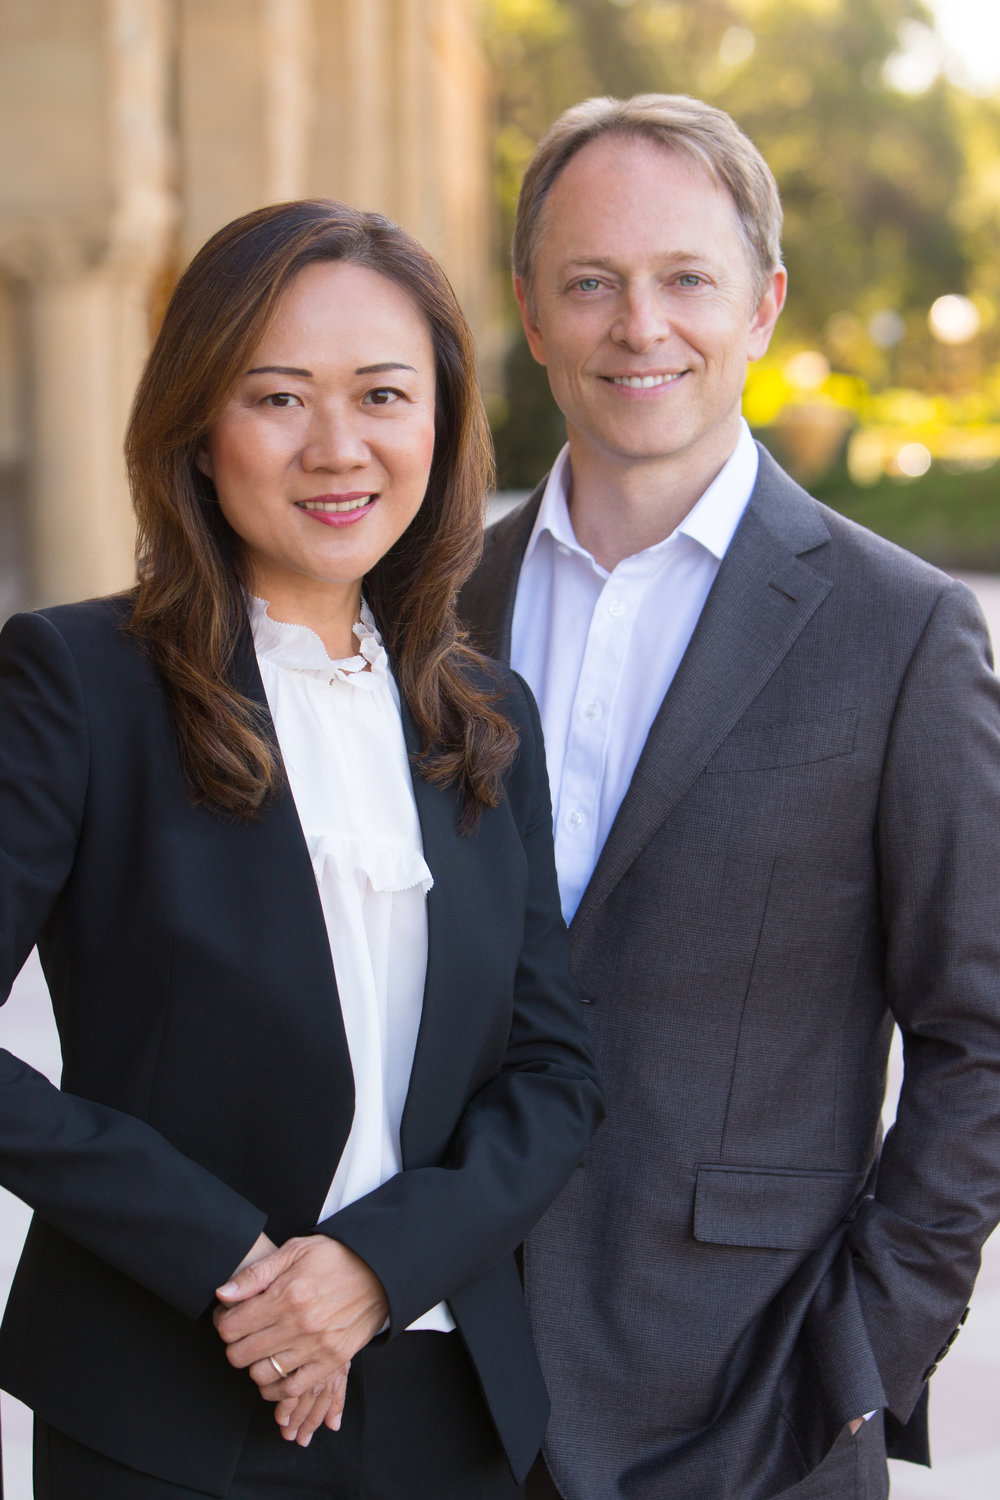 - John and Gloria Young can help you buy, sell, or build the perfect luxury home in Palo Alto